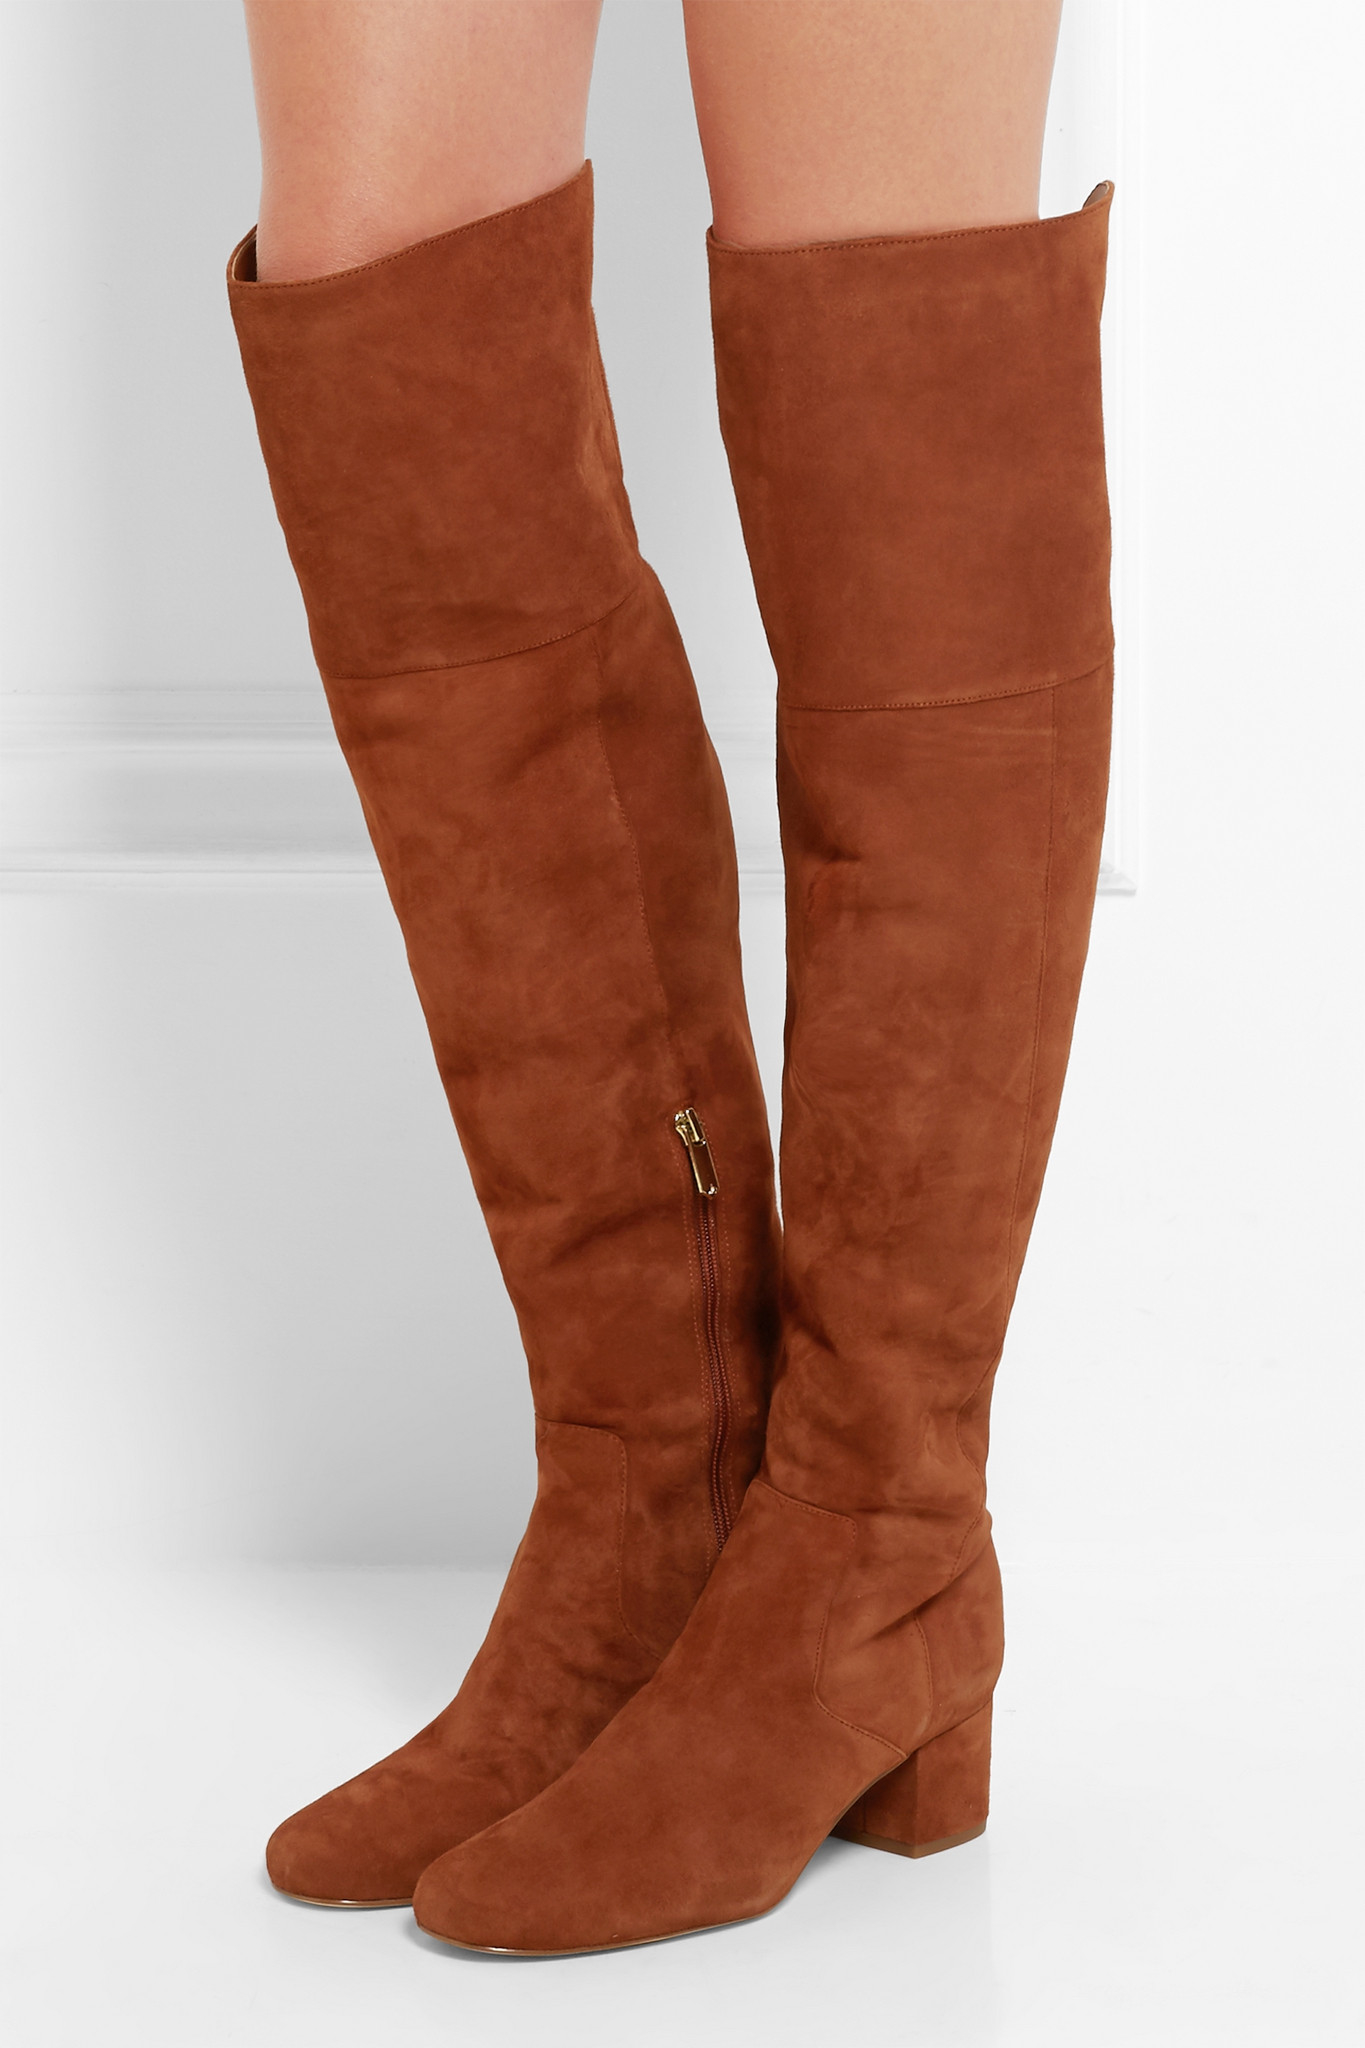 bfac12ea20a Lyst - Sam Edelman Elina Suede Over-the-knee Boots in Brown